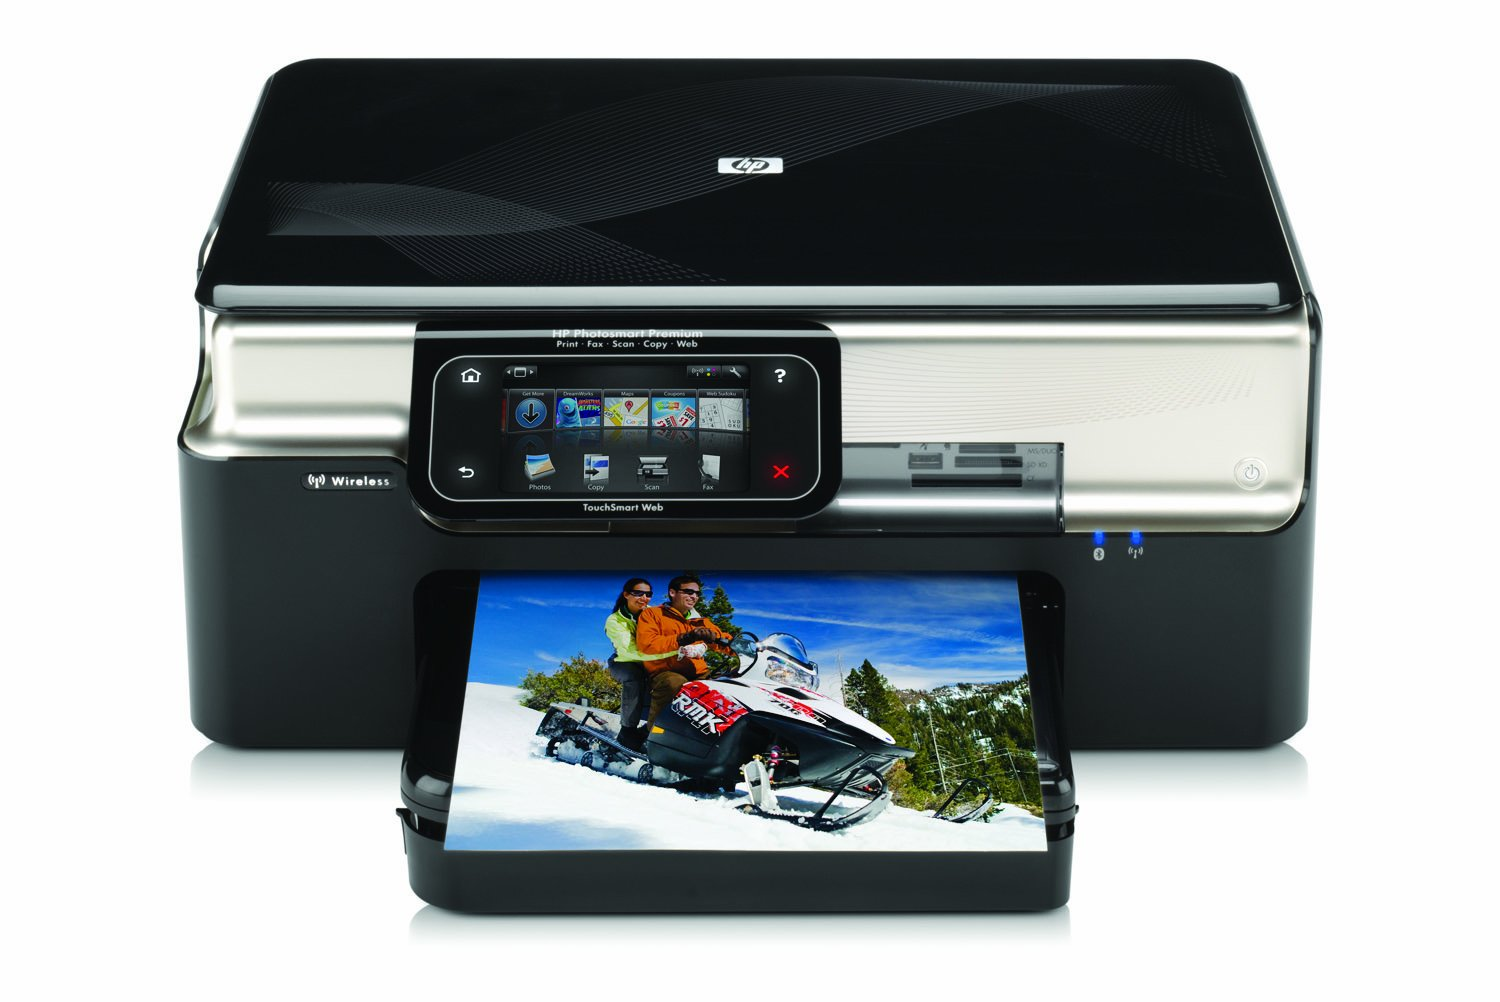 Amazon.com: HP Photosmart Premium TouchSmart Web All-in-One Printer:  Electronics